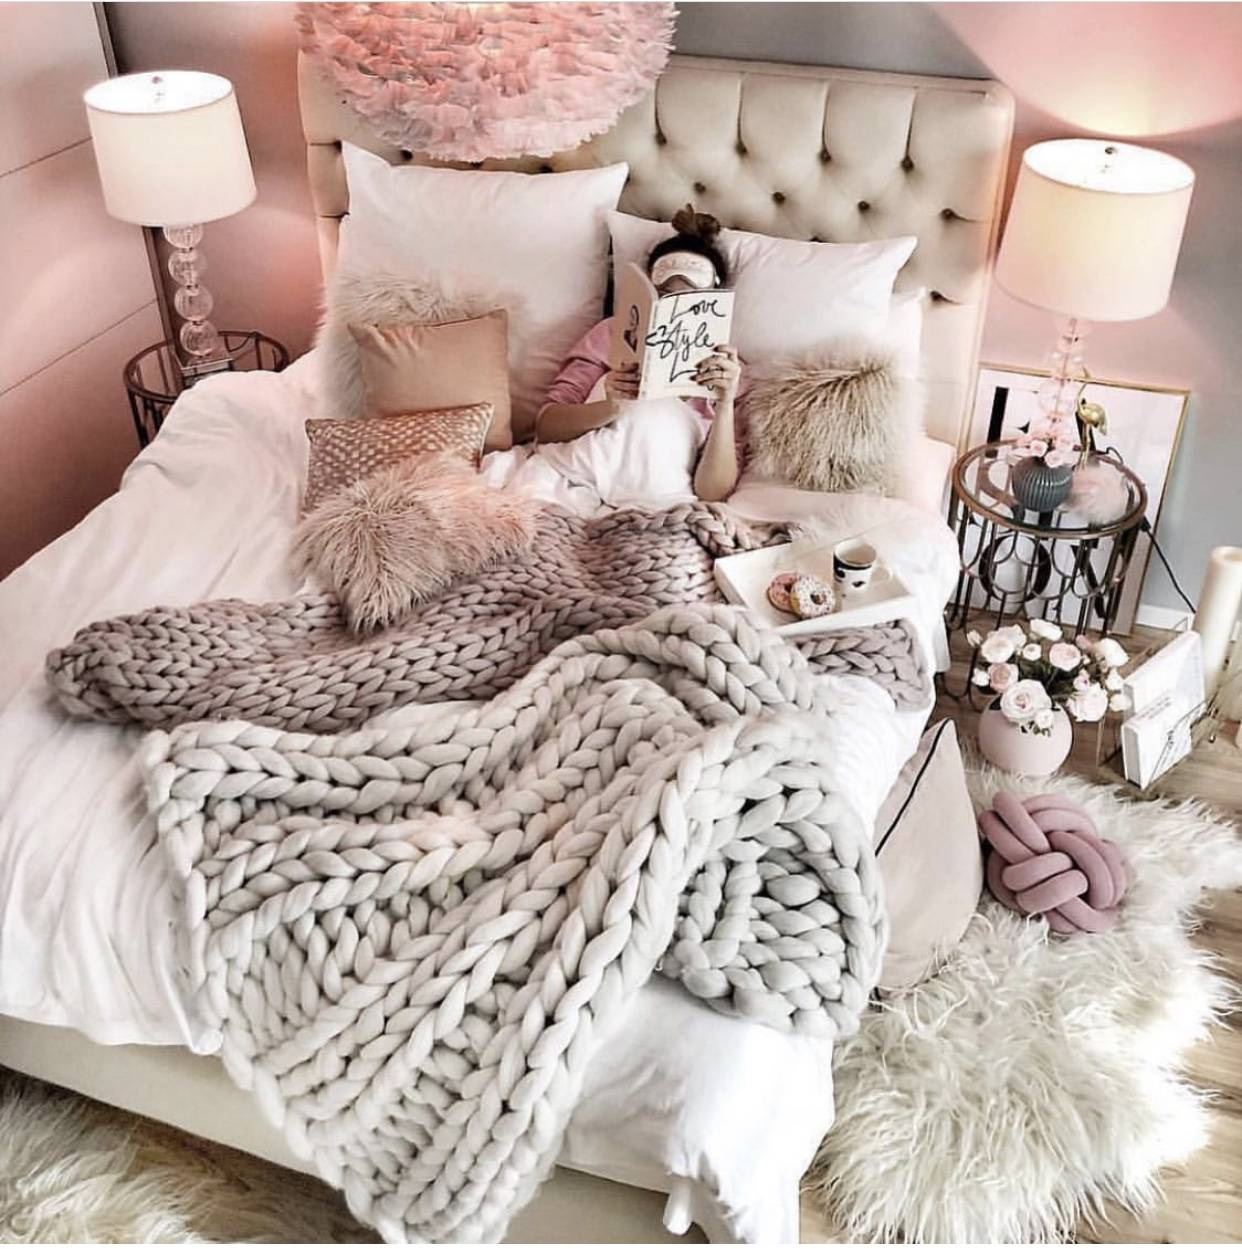 10 Vsco Bedroom Ideas For The Vsco Girl The Pink Dream